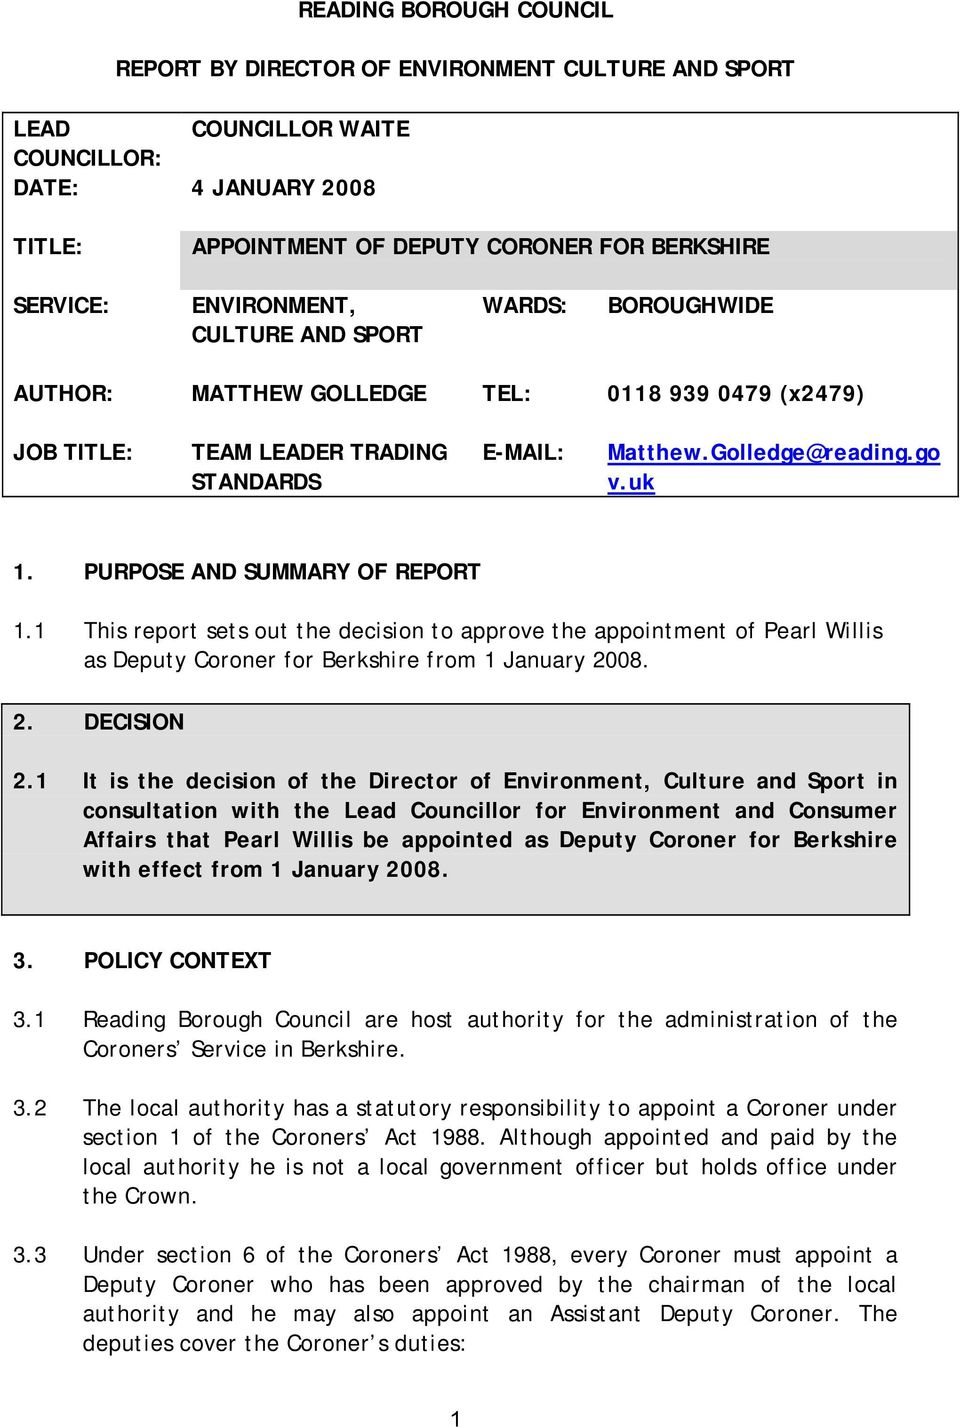 PURPOSE AND SUMMARY OF REPORT 1.1 This report sets out the decision to approve the appointment of Pearl Willis as Deputy Coroner for Berkshire from 1 January 2008. 2. DECISION 2.